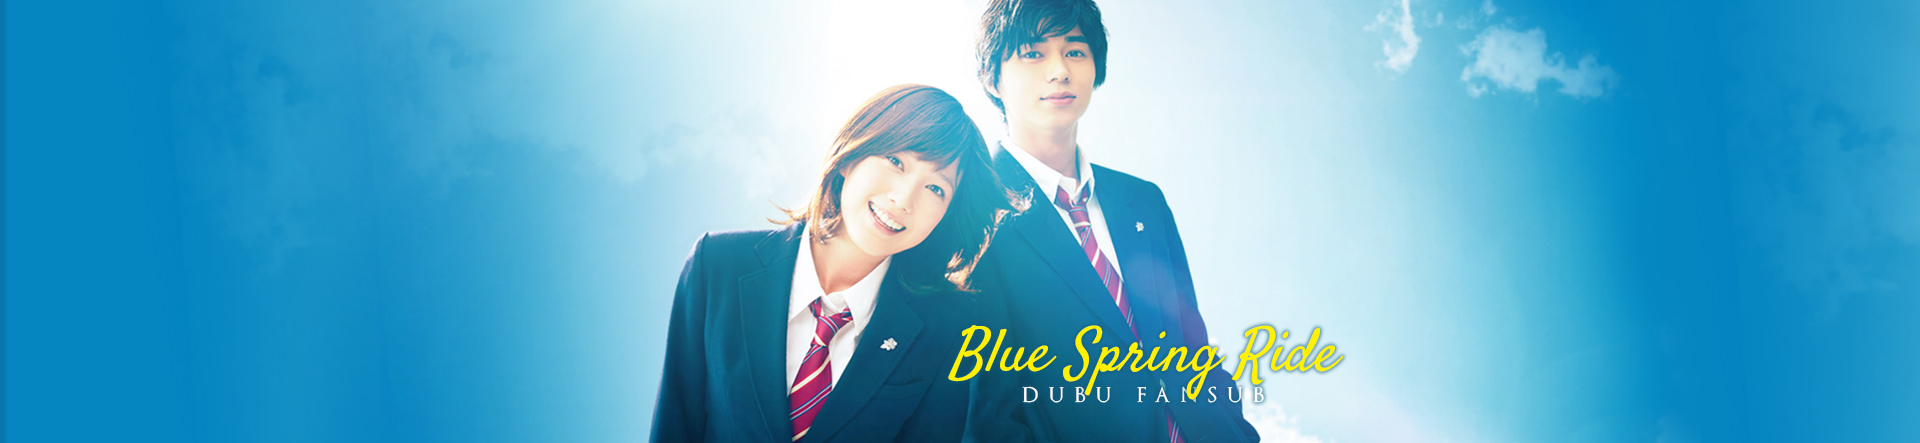 blue-spring-ride-live-action-ao-haru-ride